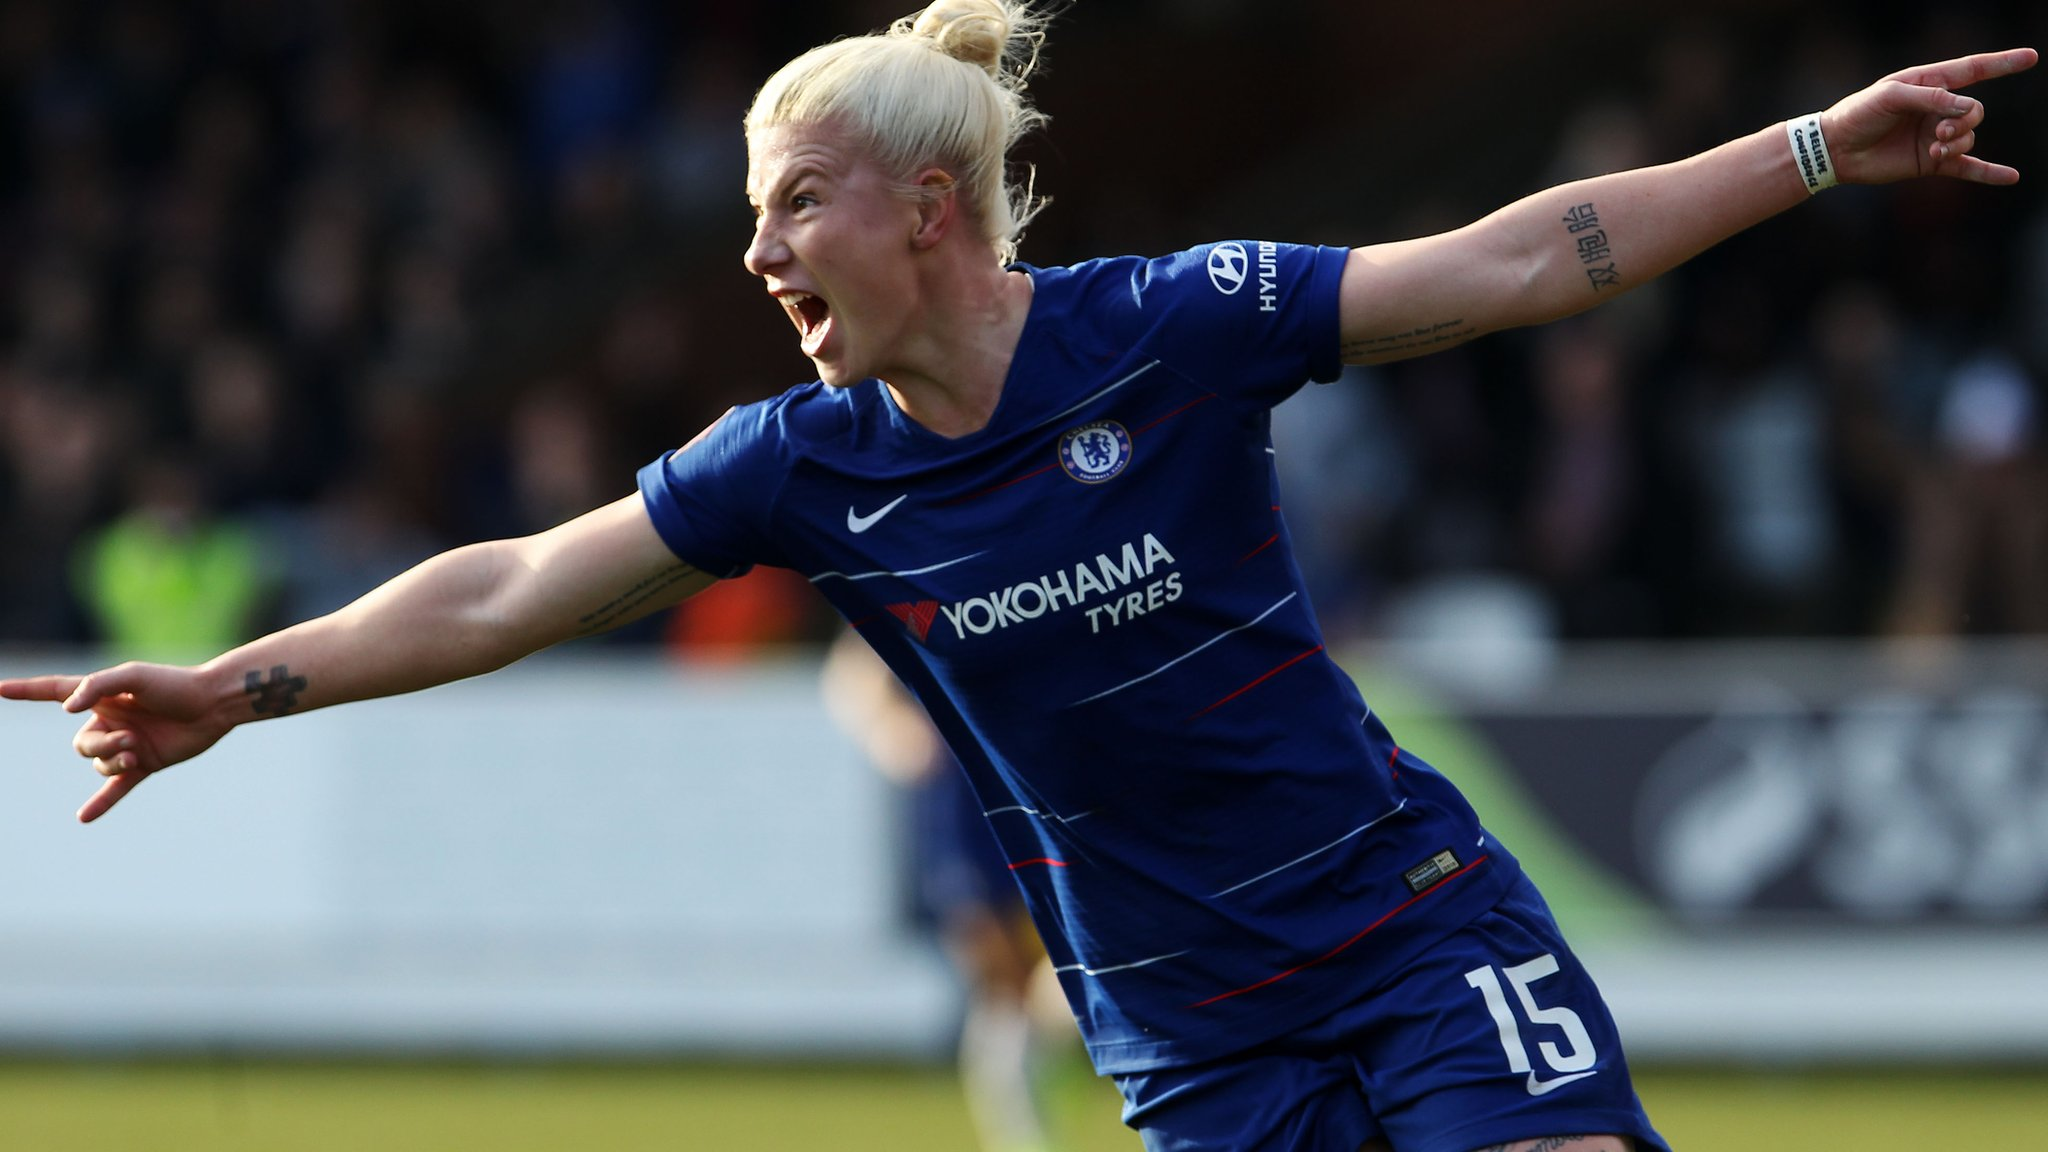 Chelsea 3-0 Arsenal: Bethany England double seals Chelsea FA Cup quarter-final spot